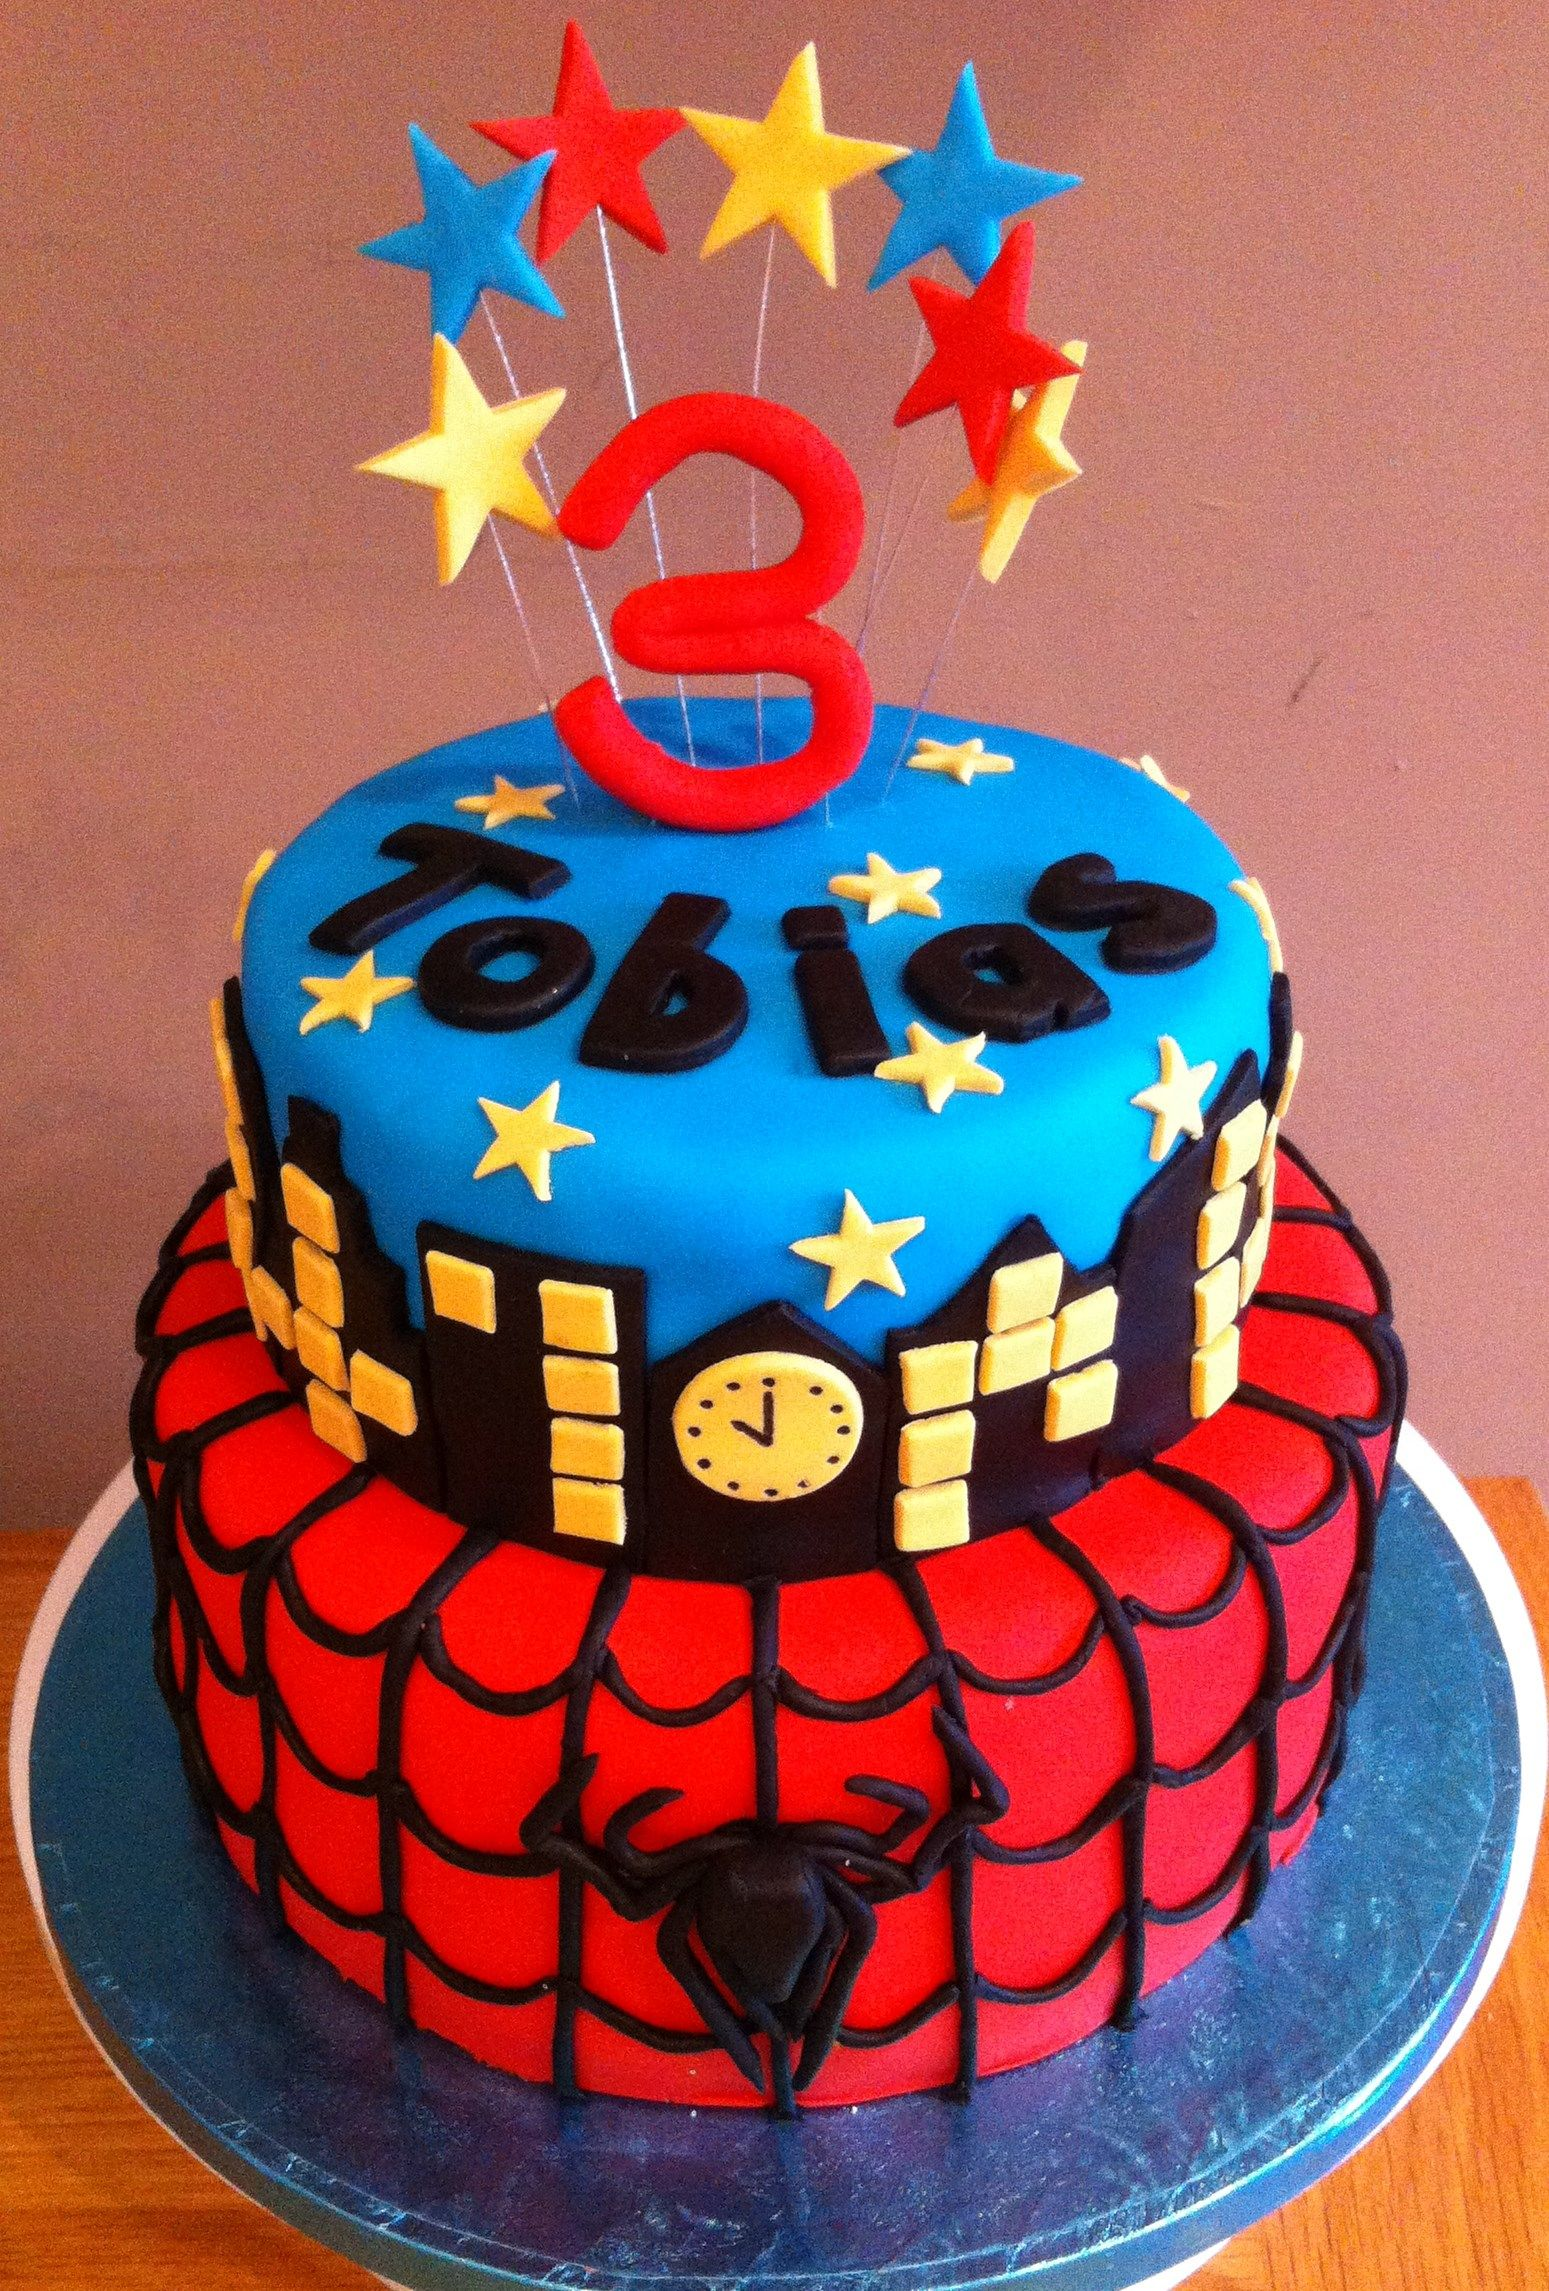 Birthday Cake Ideas Spiderman : 2 tier Spiderman cake...... Birthday Cakes Pinterest ...